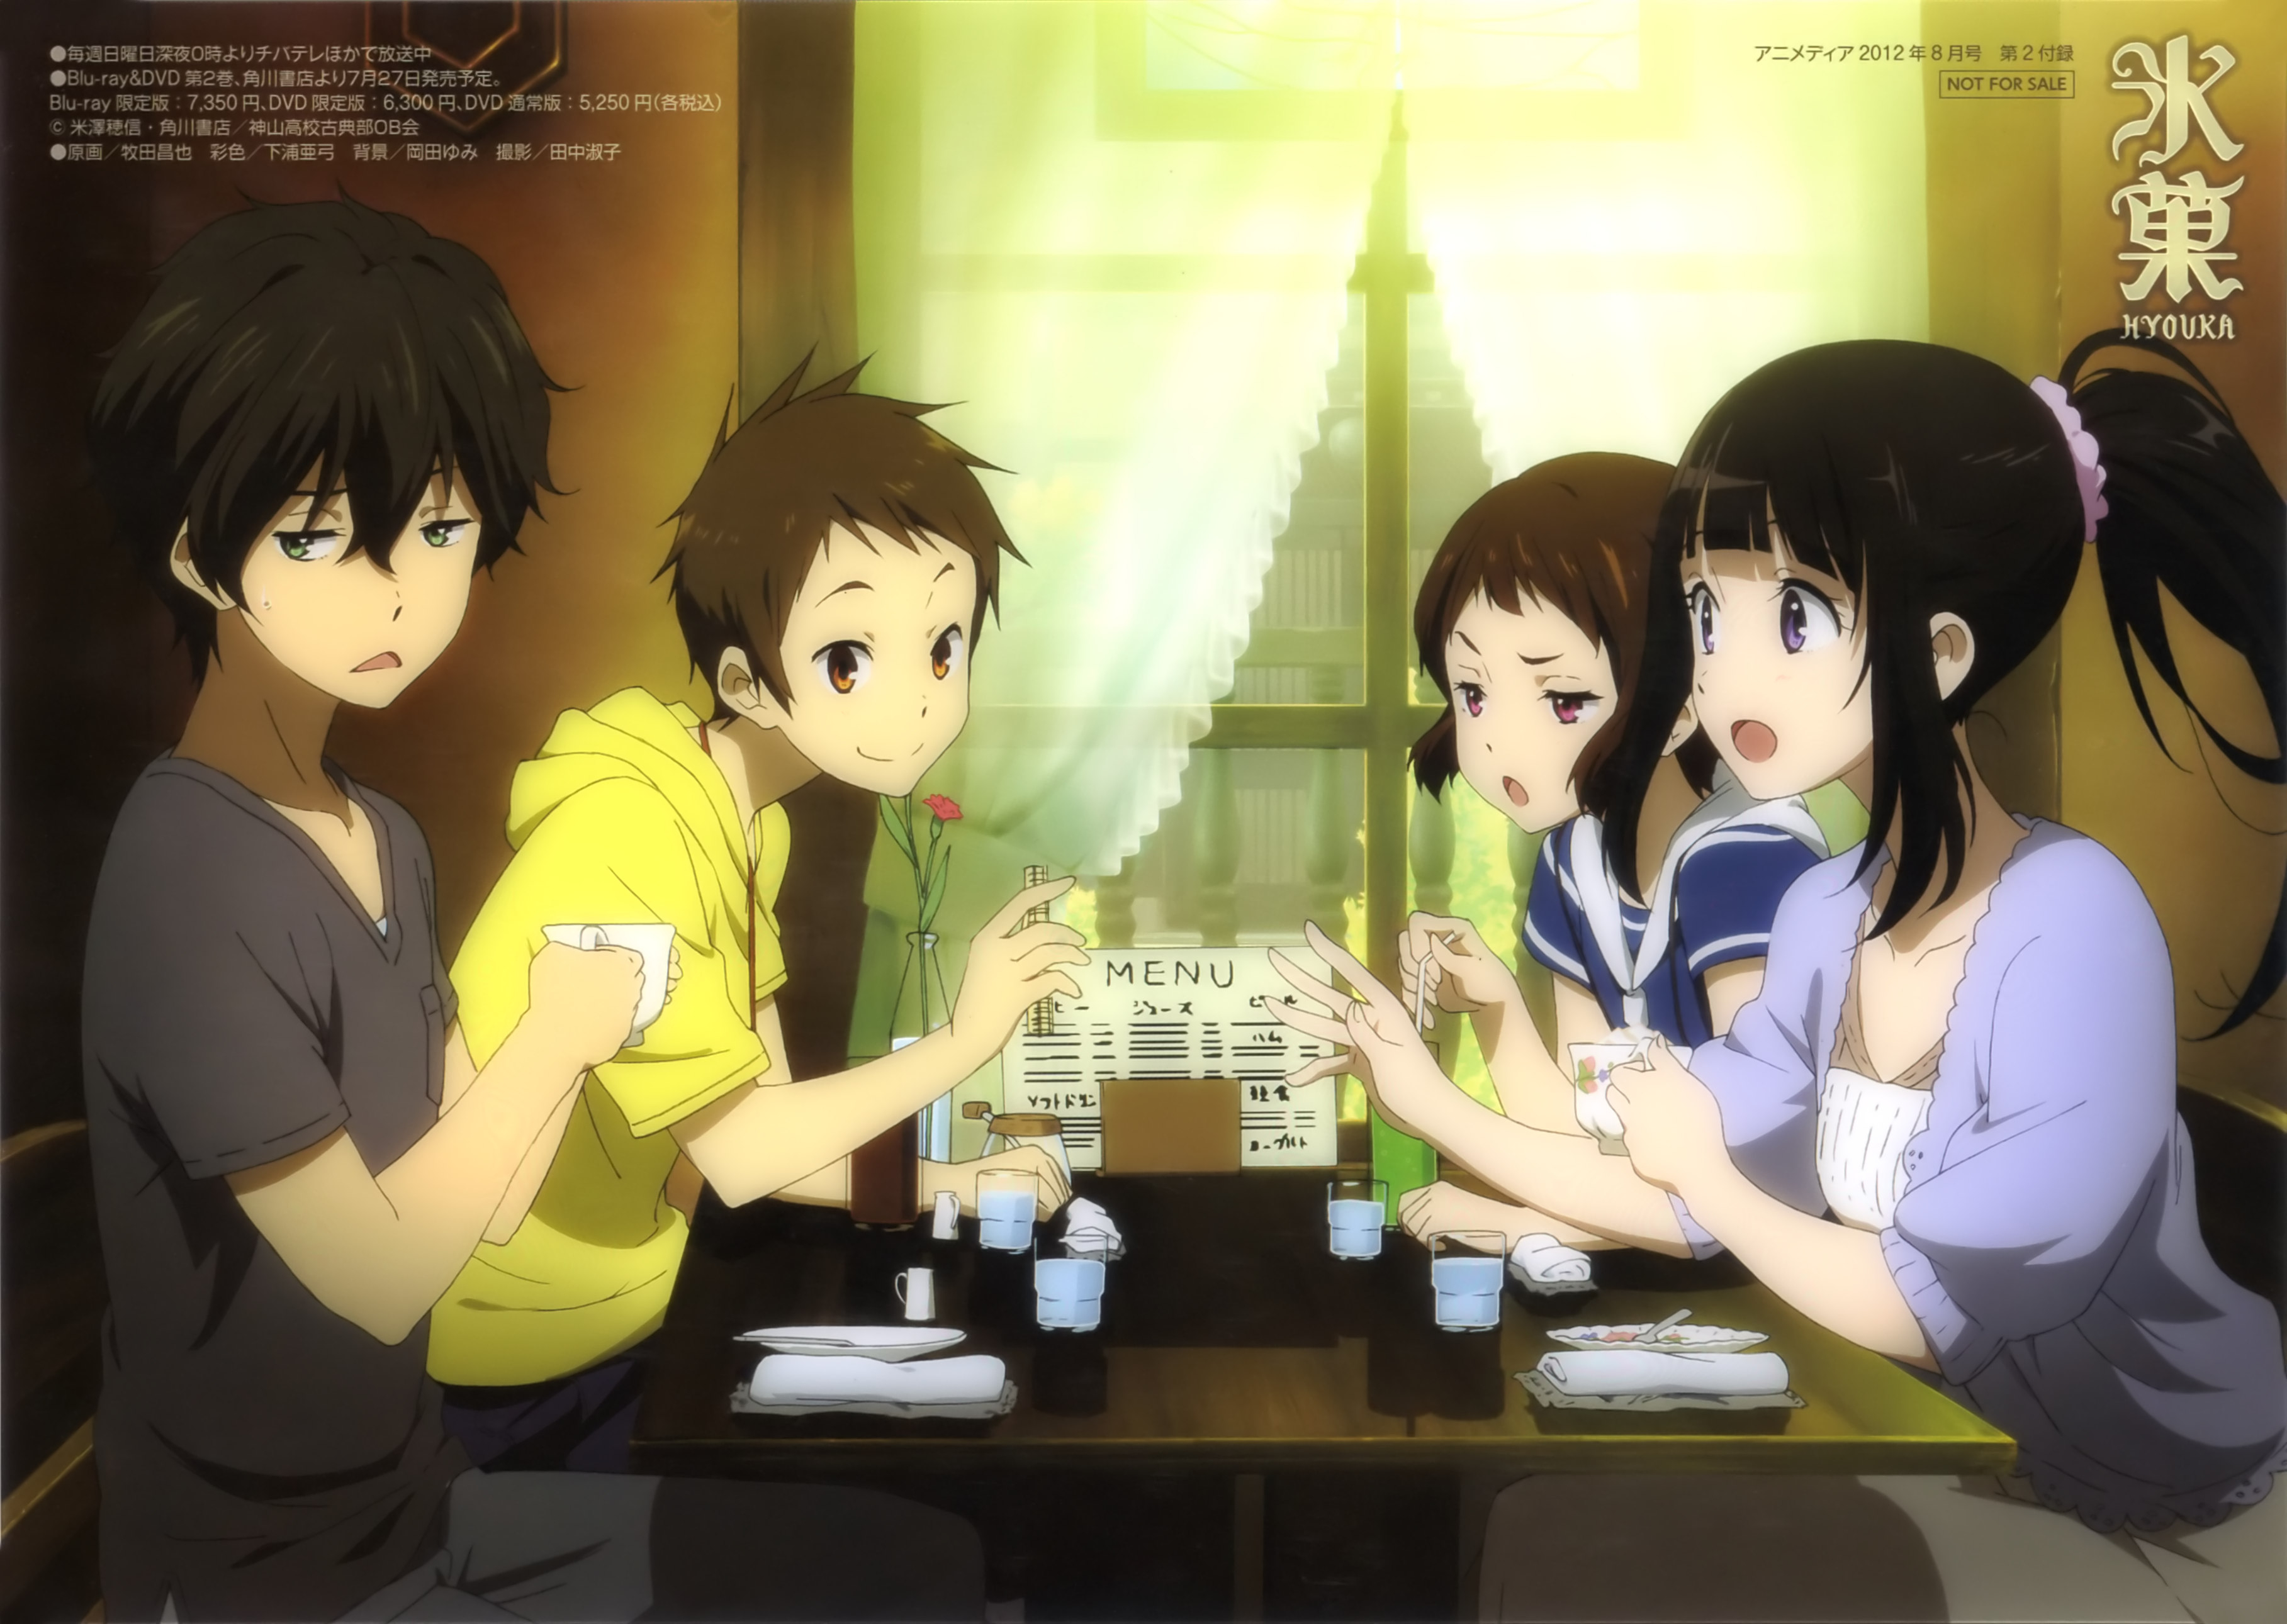 Picture Hyouka Young Man Girls Anime 3634x2581